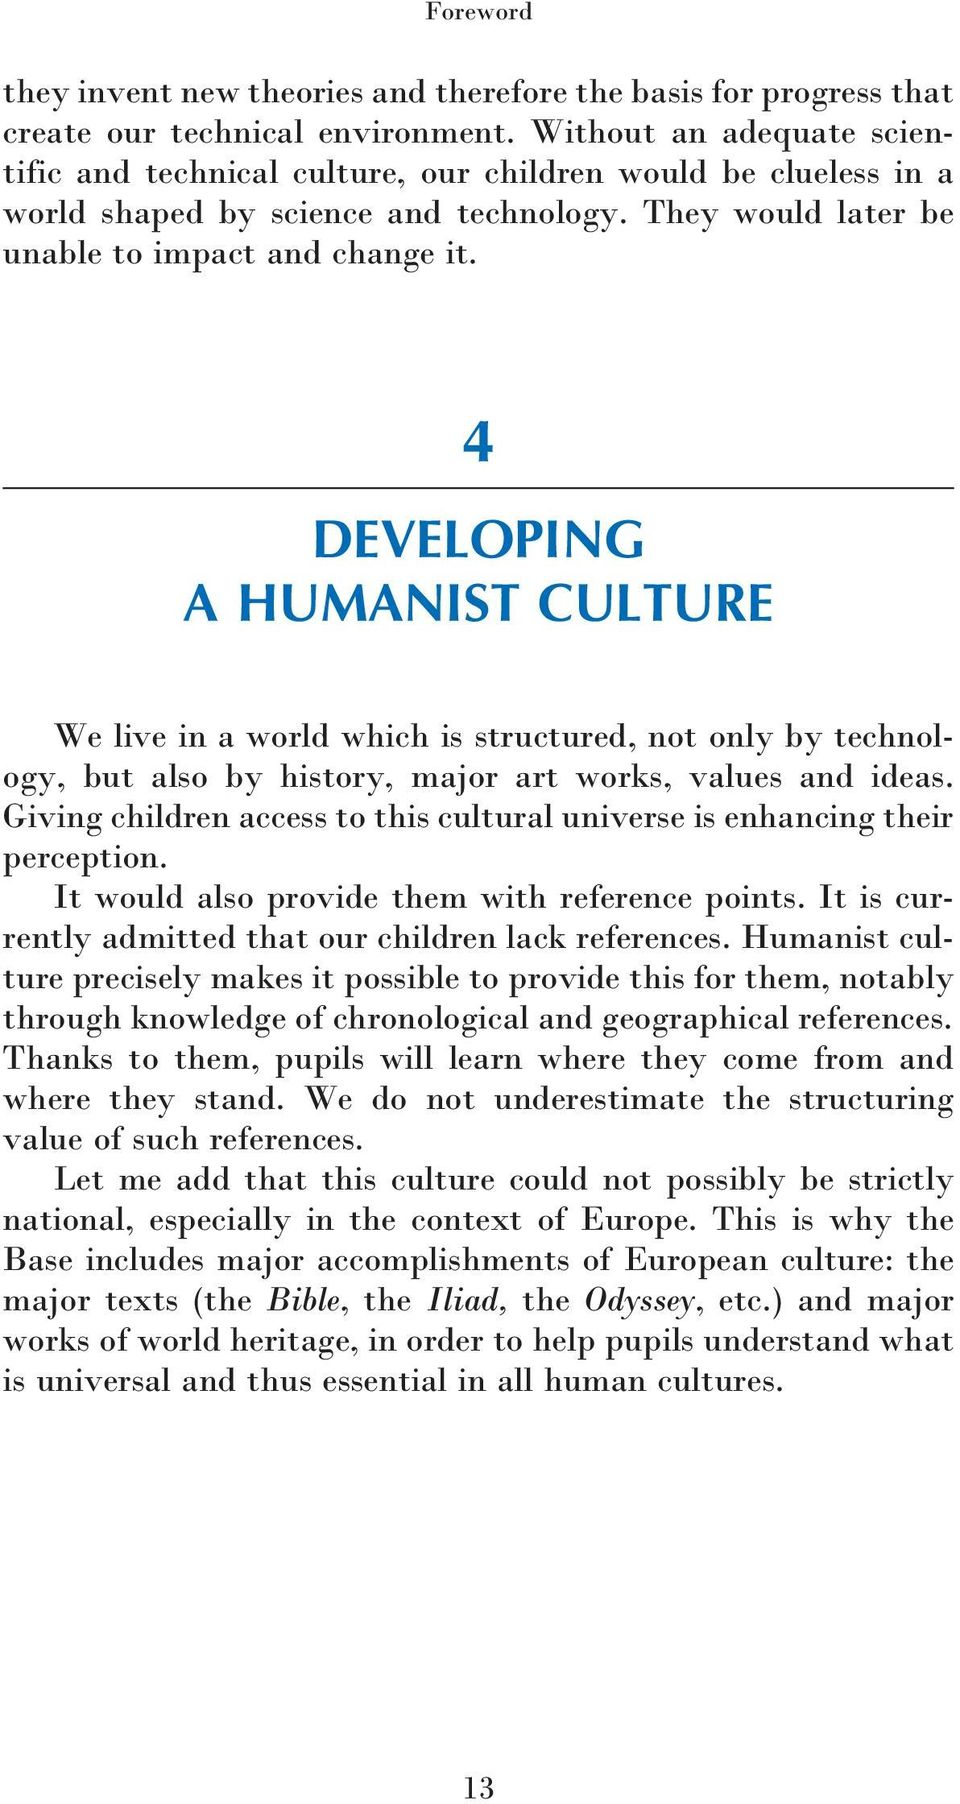 4 DEVELOPING A HUMANIST CULTURE We live in a world which is structured, not only by technology, but also by history, major art works, values and ideas.